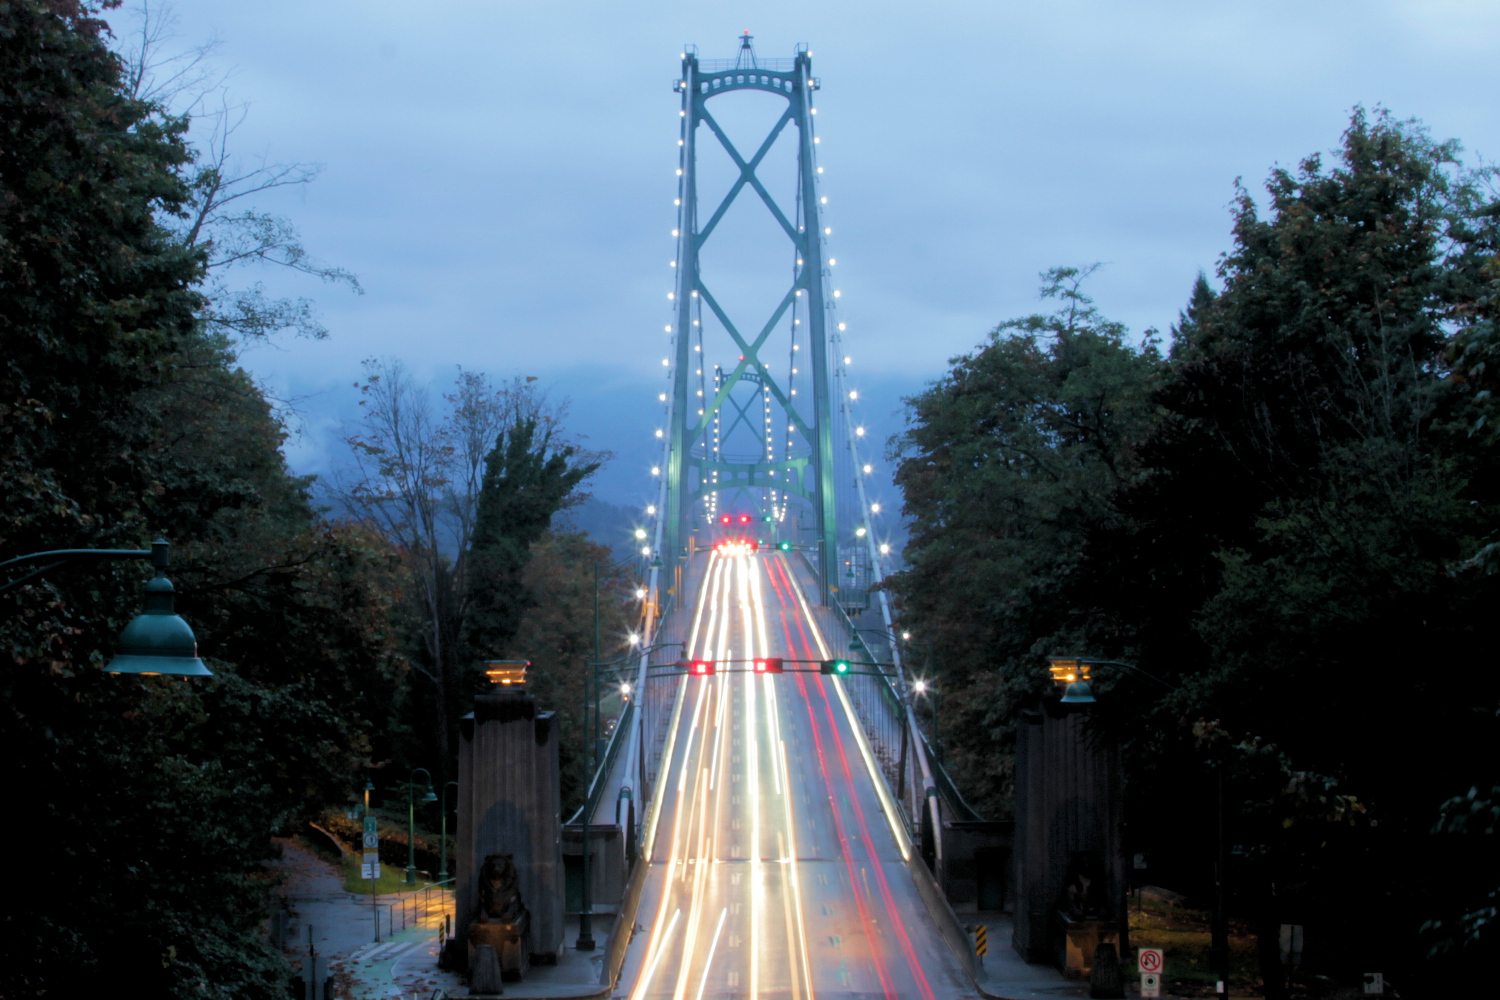 2020 From BC - Vancouver - Lions Gate Bridge IMG_6470a.jpg